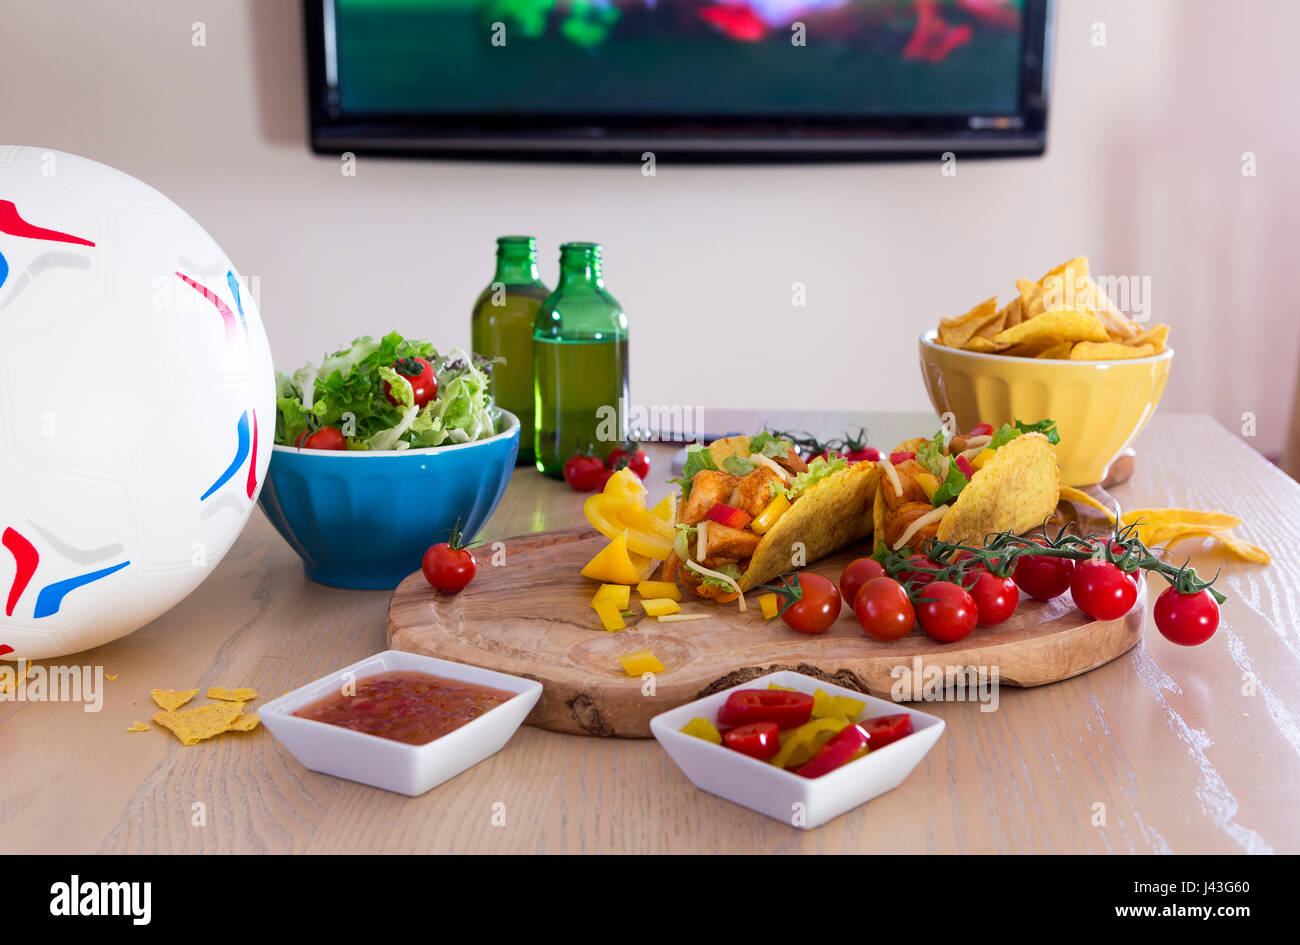 Mexican tacos and beer on a table with a football. There is a television in the background with sports showing. - Stock Image